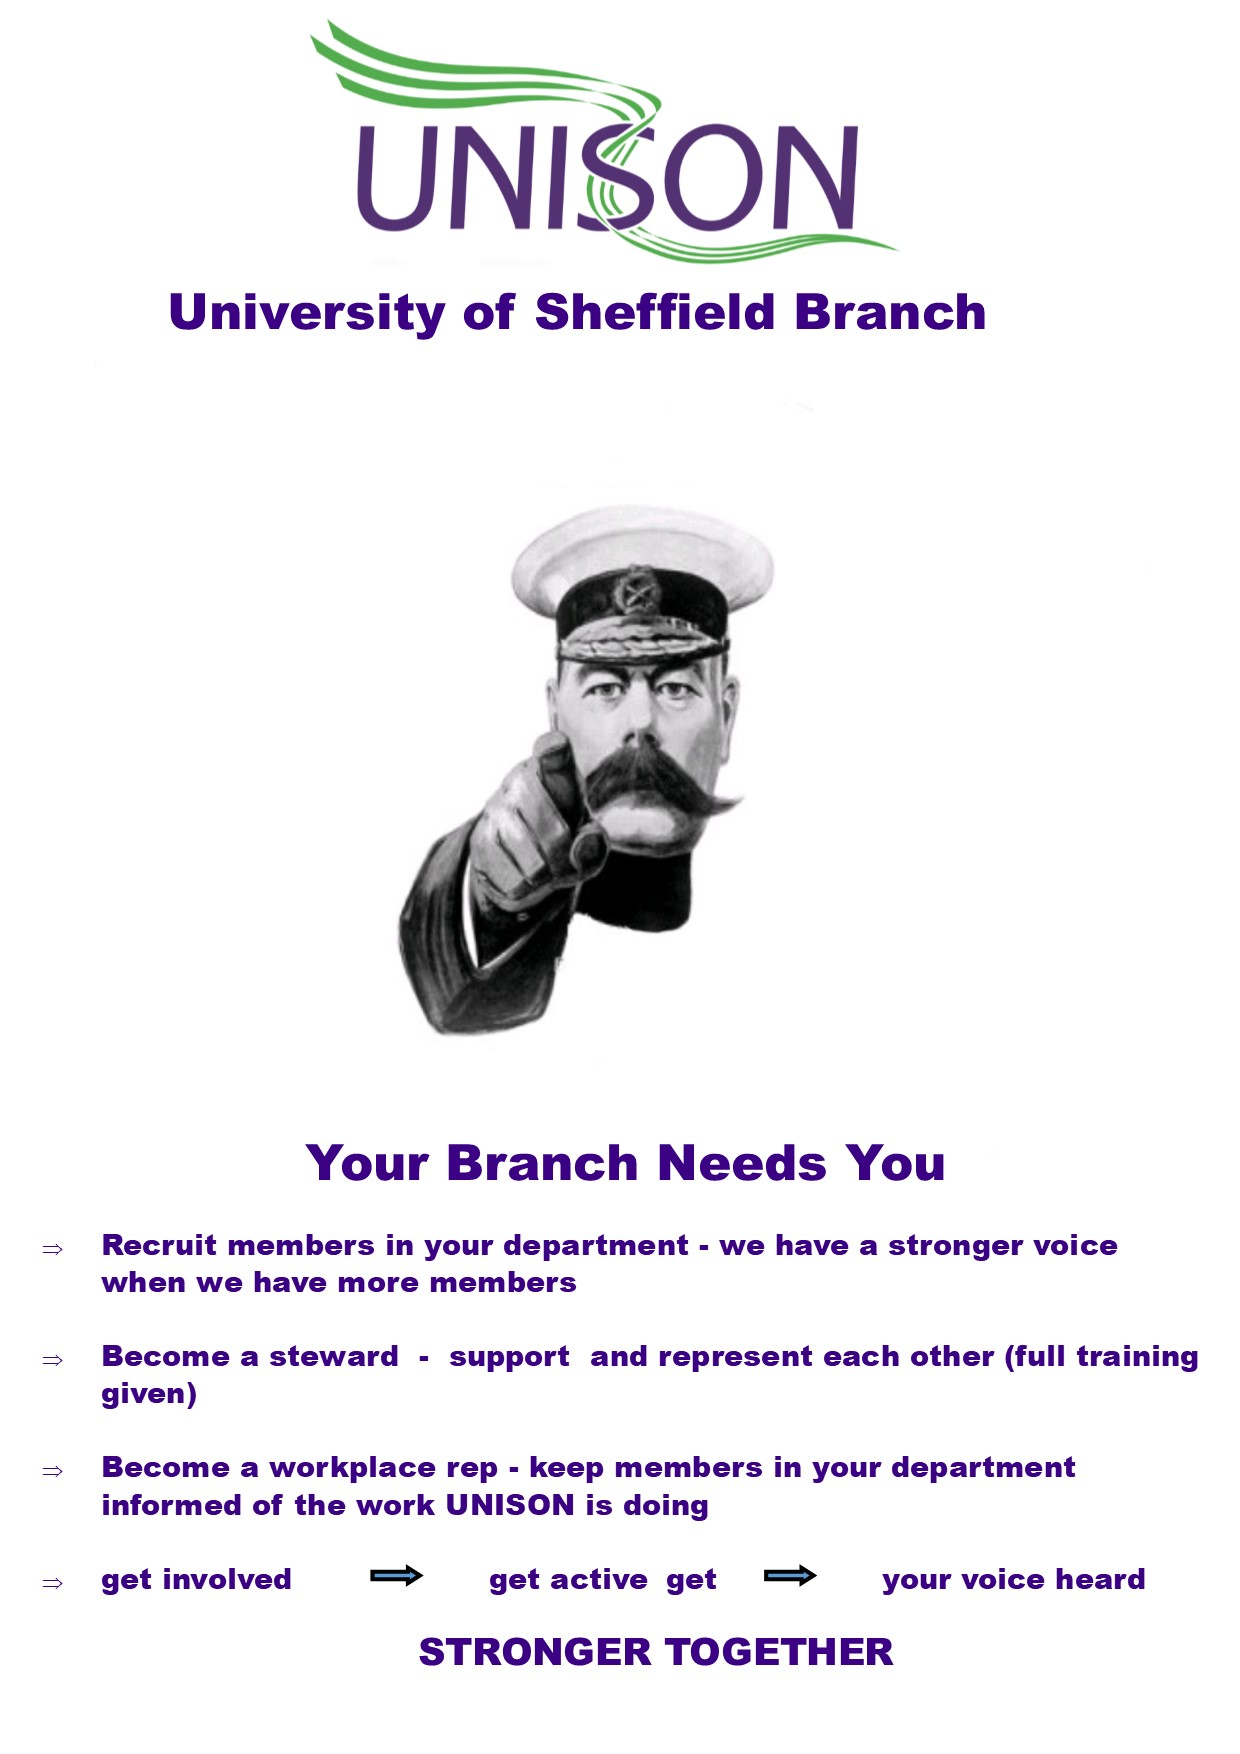 Your Branch Needs You